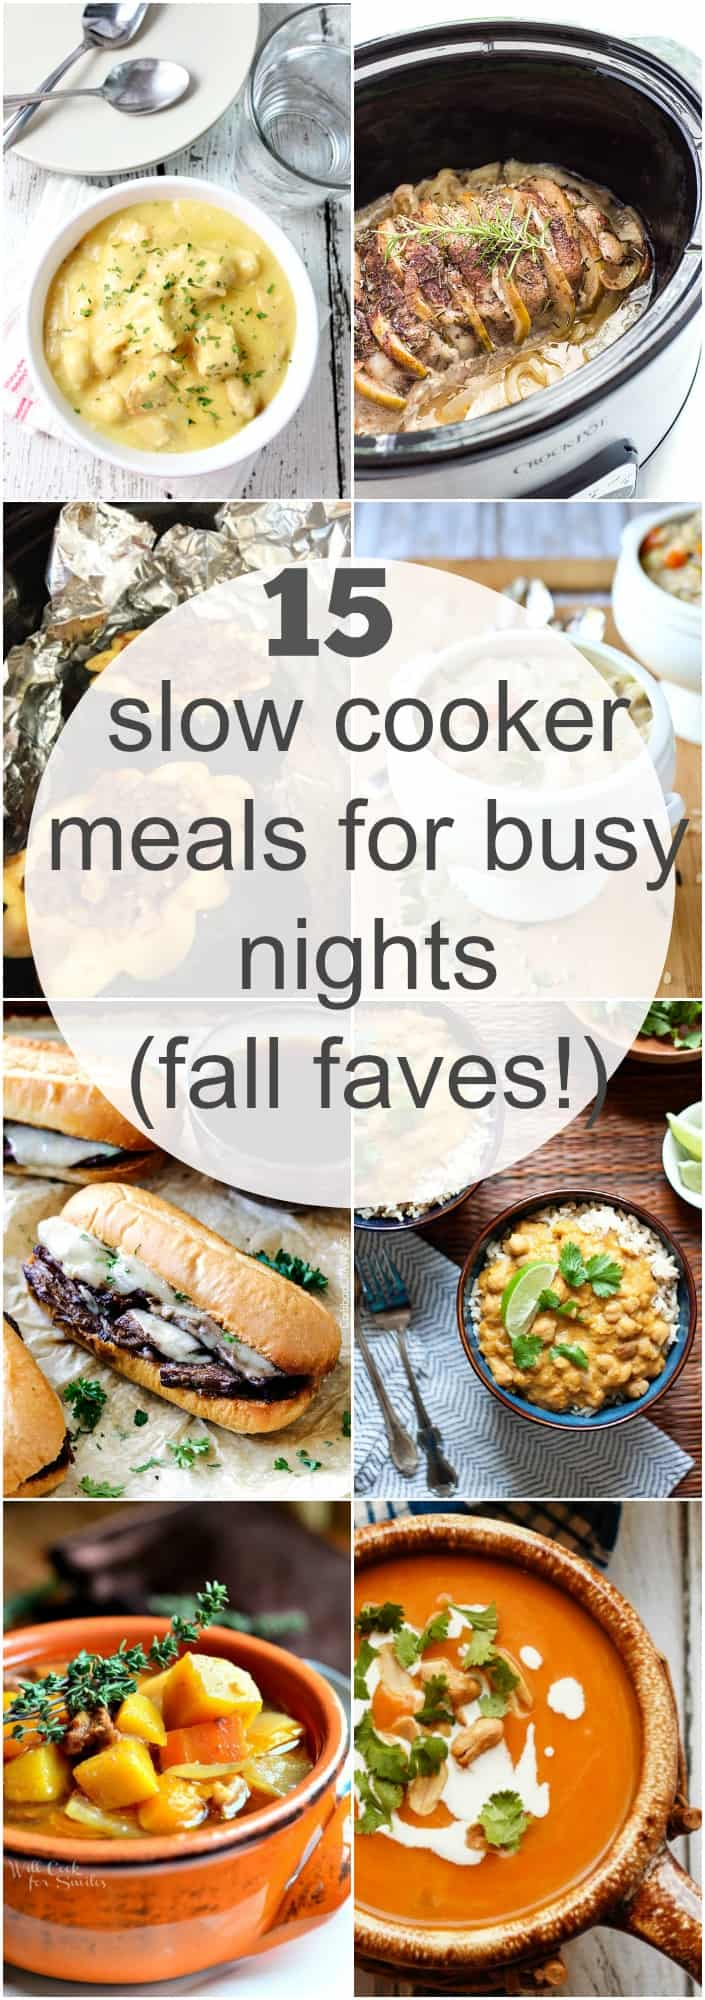 Food and Drink 15 slow cooker crockpot meals for busy nights- fall favorites